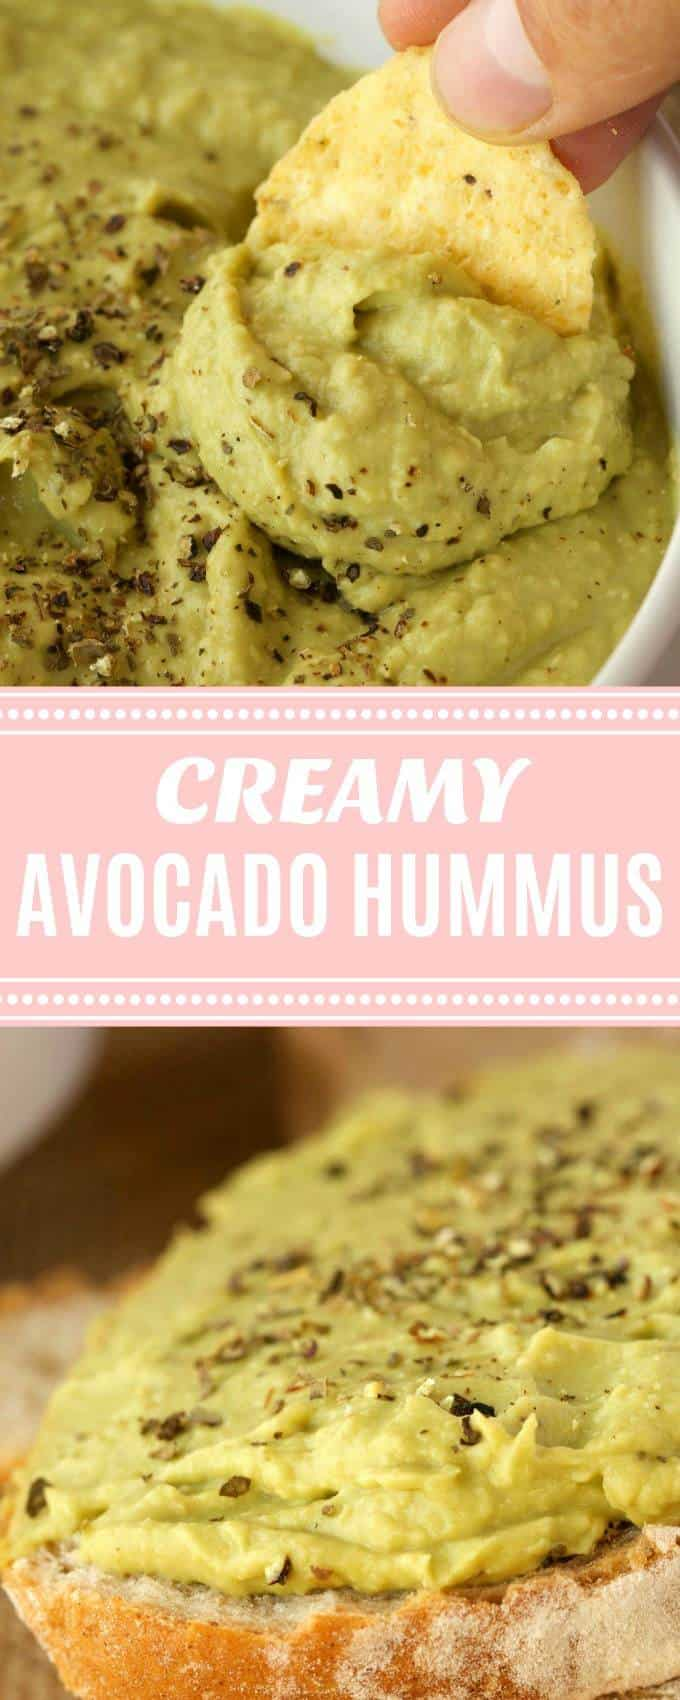 Creamy and smooth avocado hummus. This delicious cross between guacamole and hummus is highly nutritious and makes a perfect dip or spread! Vegan and gluten-free. | lovingitvegan.com